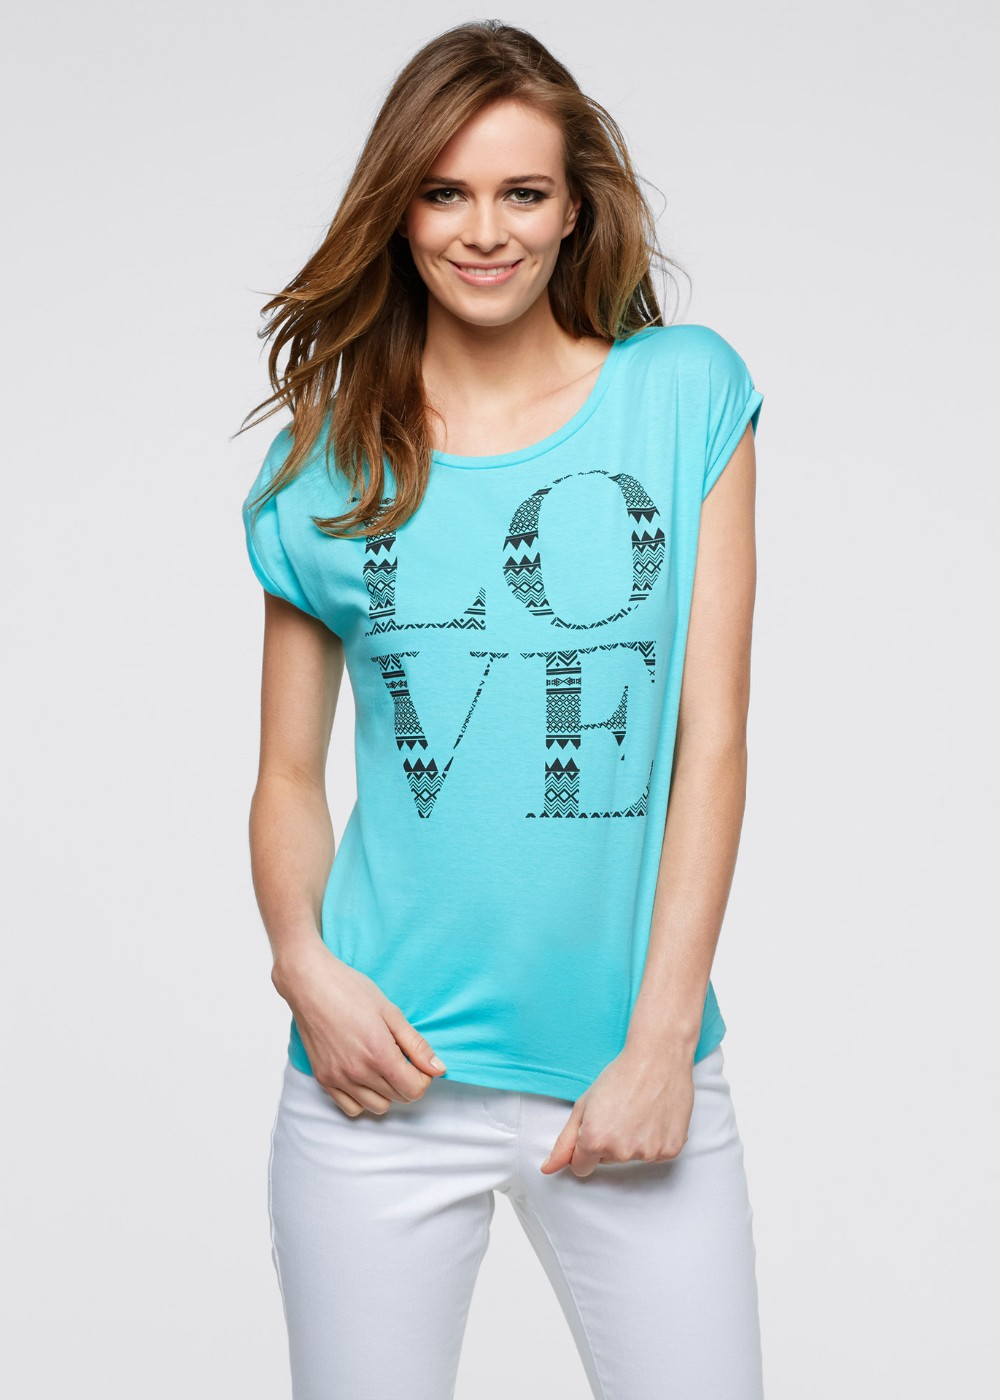 Fashion women t shirt tight t-shirt new model t shirt for women wholesale